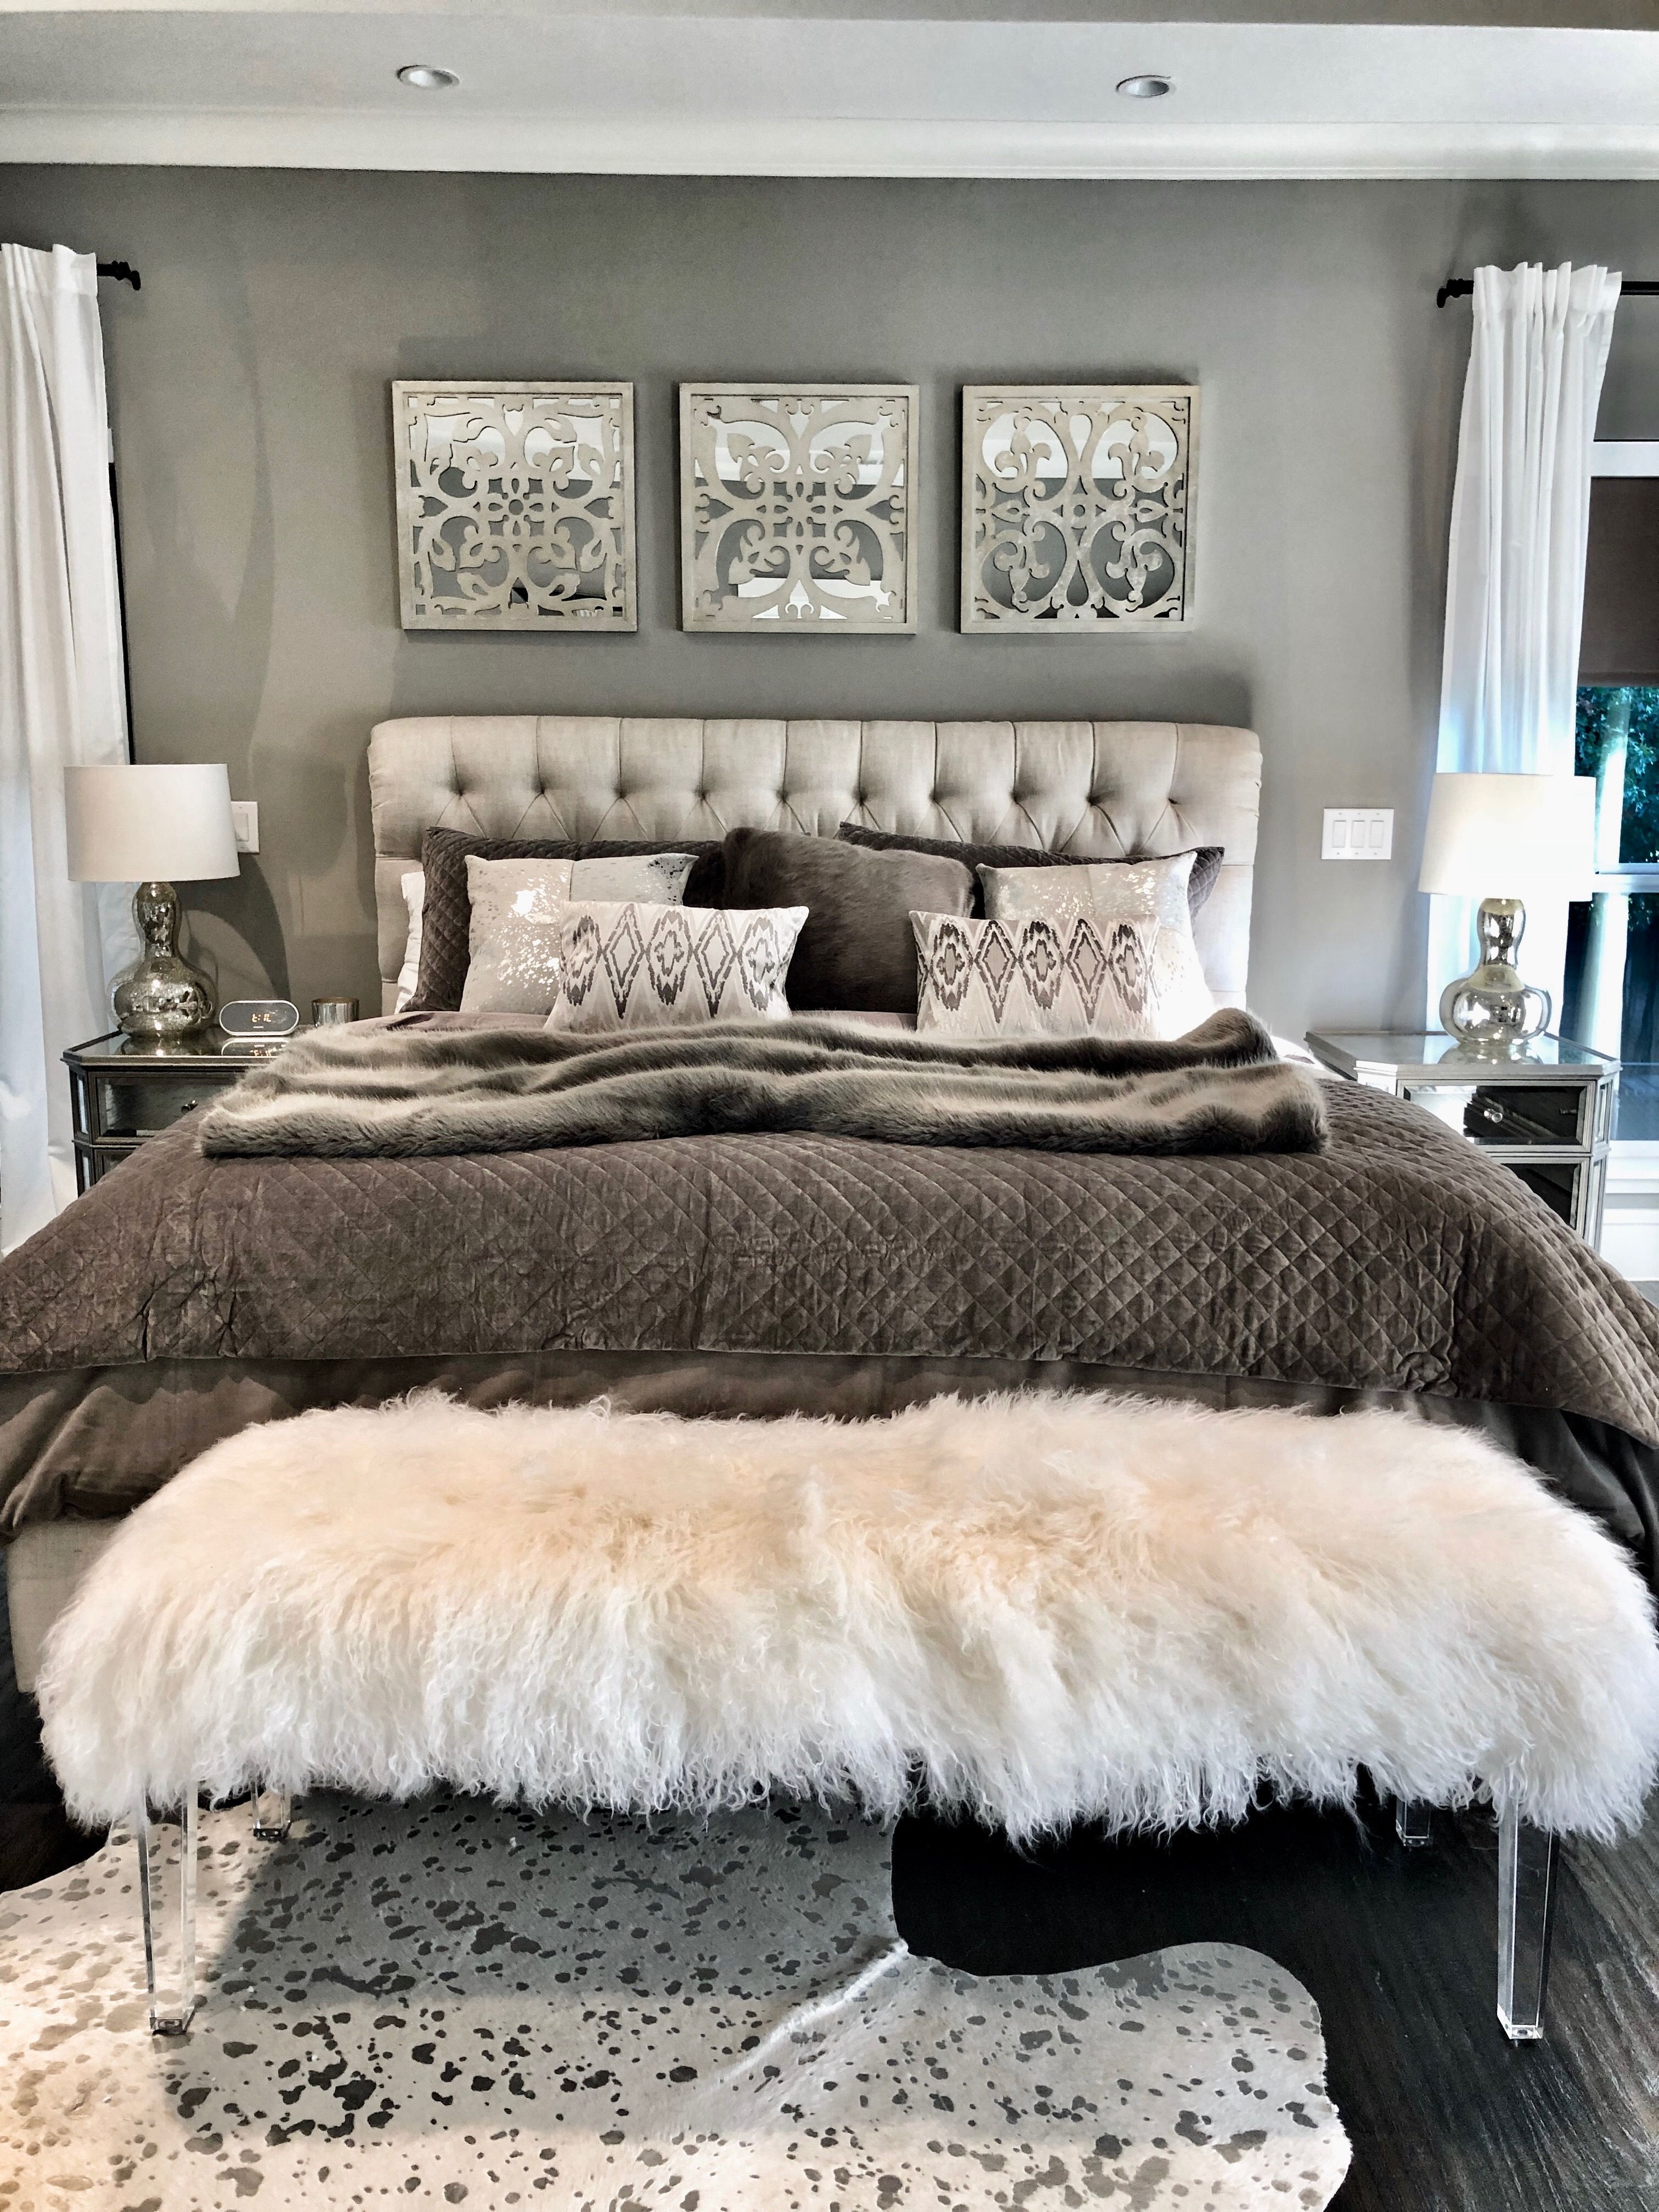 Best In Love With My Grey Master Bedroom Aesthetic The Tufted 400 x 300